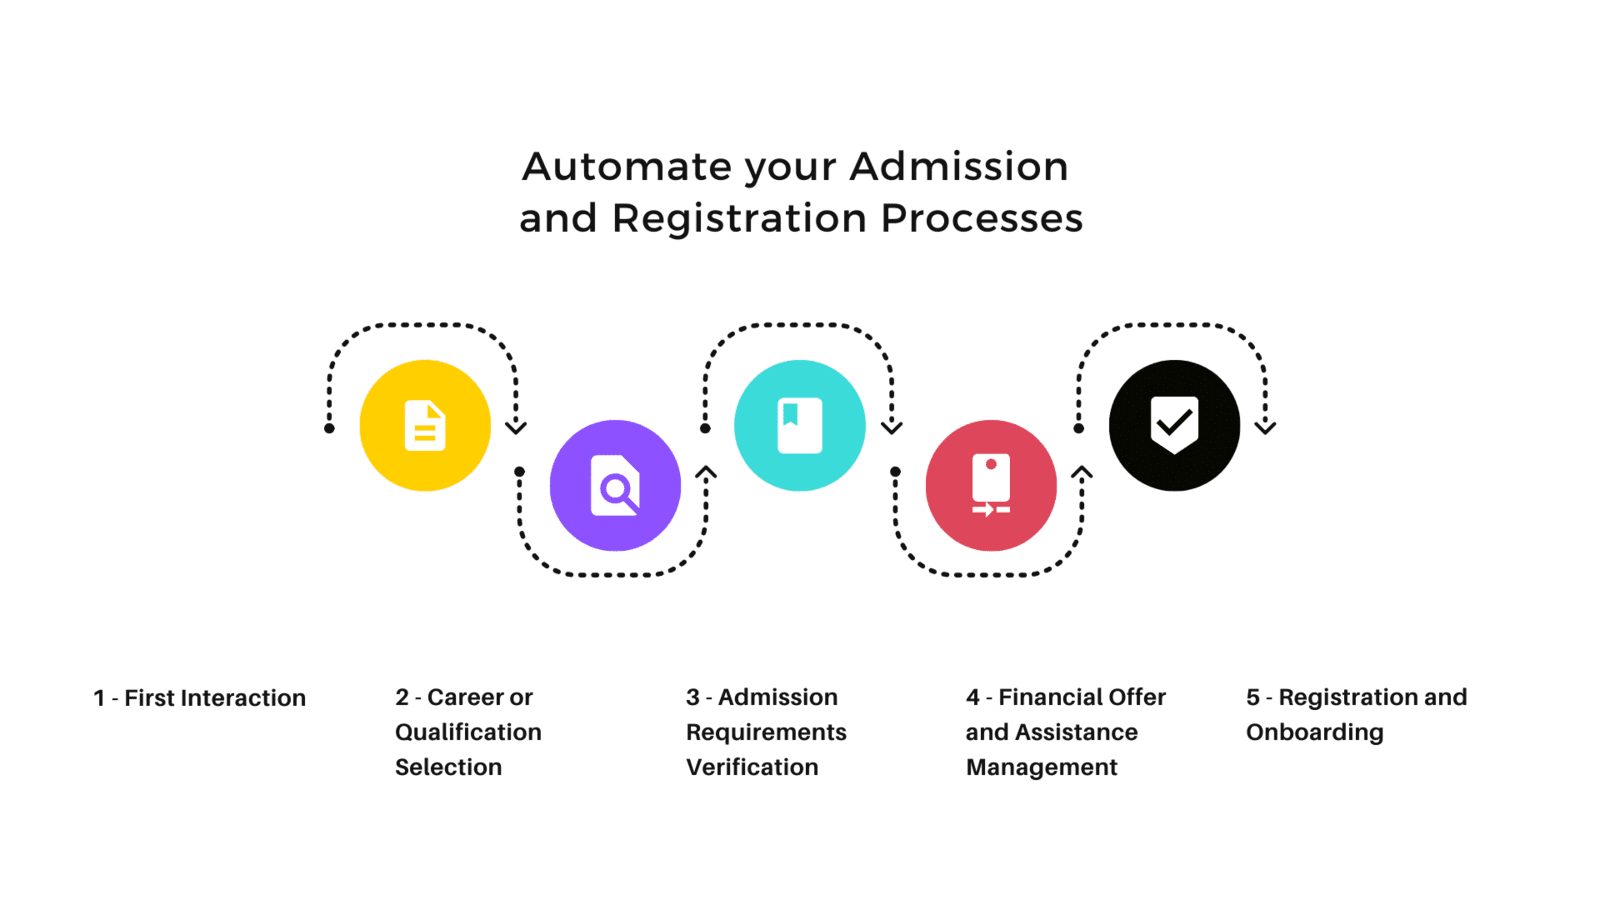 Automate Your Admission and Registration Processes